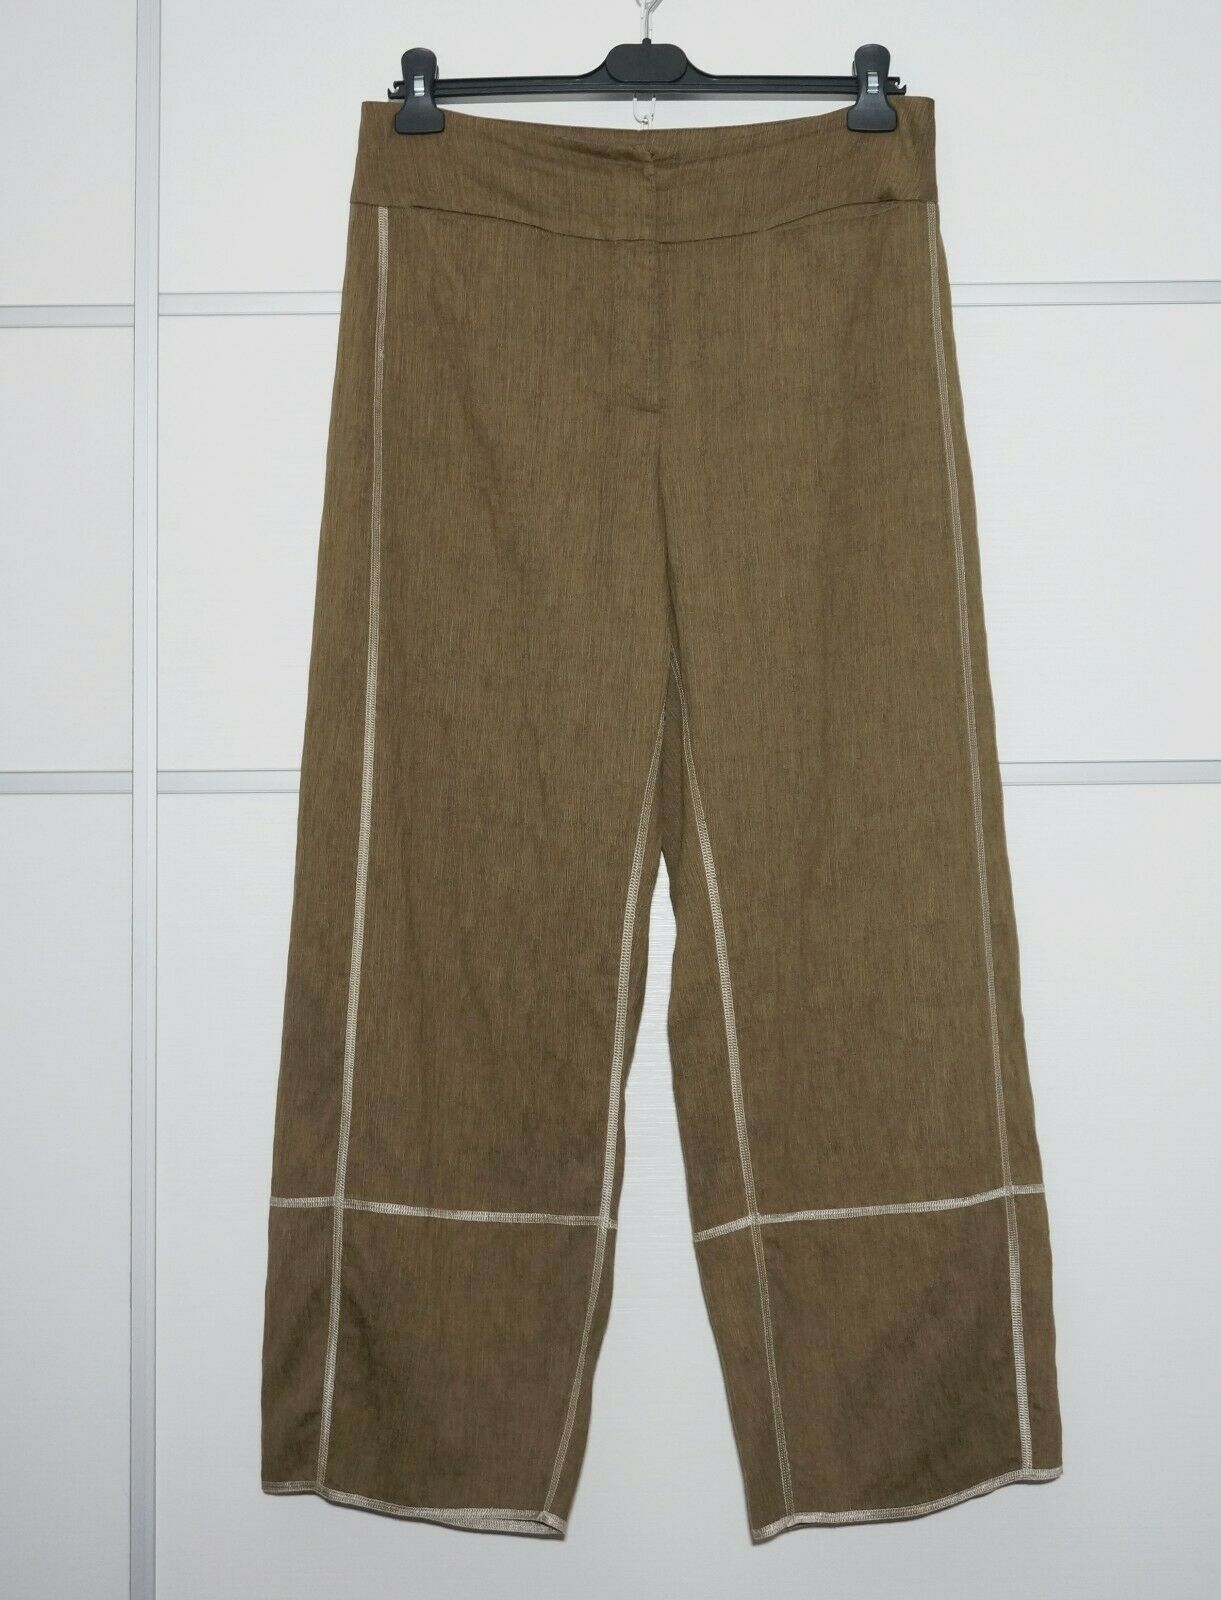 Annette Görtz Stone Pants Hose,gr. 42; Made in Germany